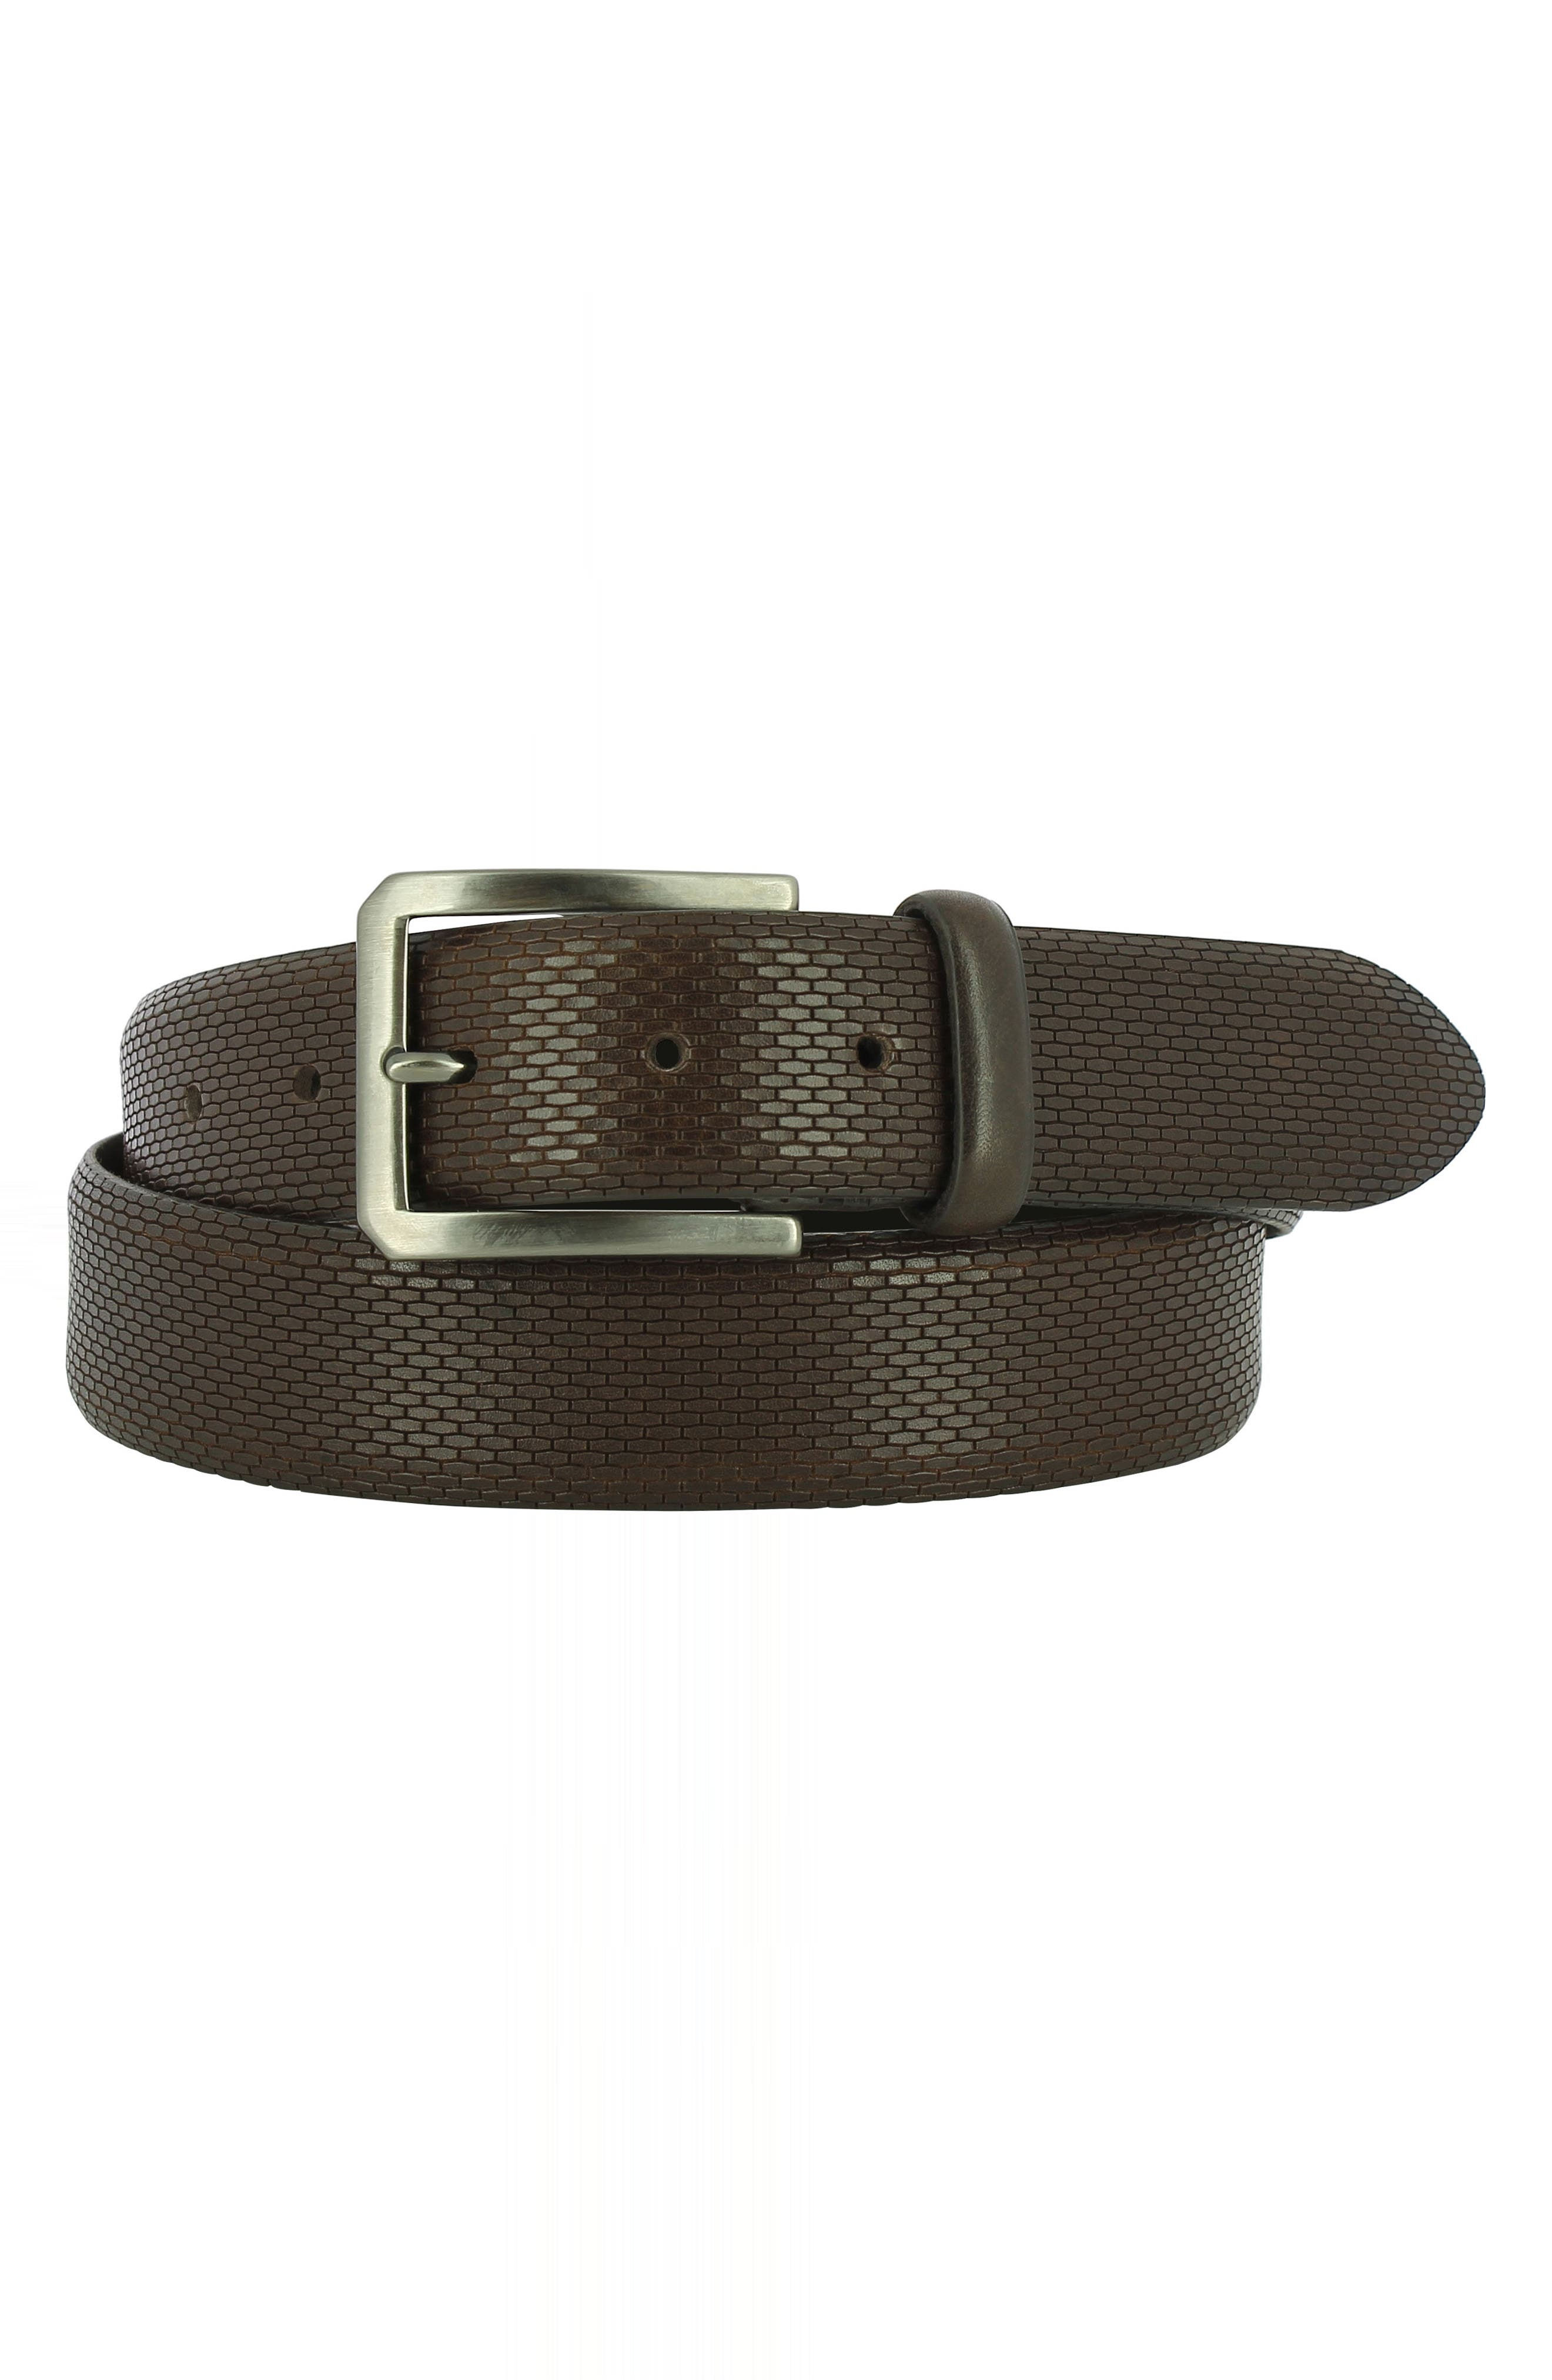 'Bruno' Leather Belt,                             Main thumbnail 1, color,                             CHOCOLATE